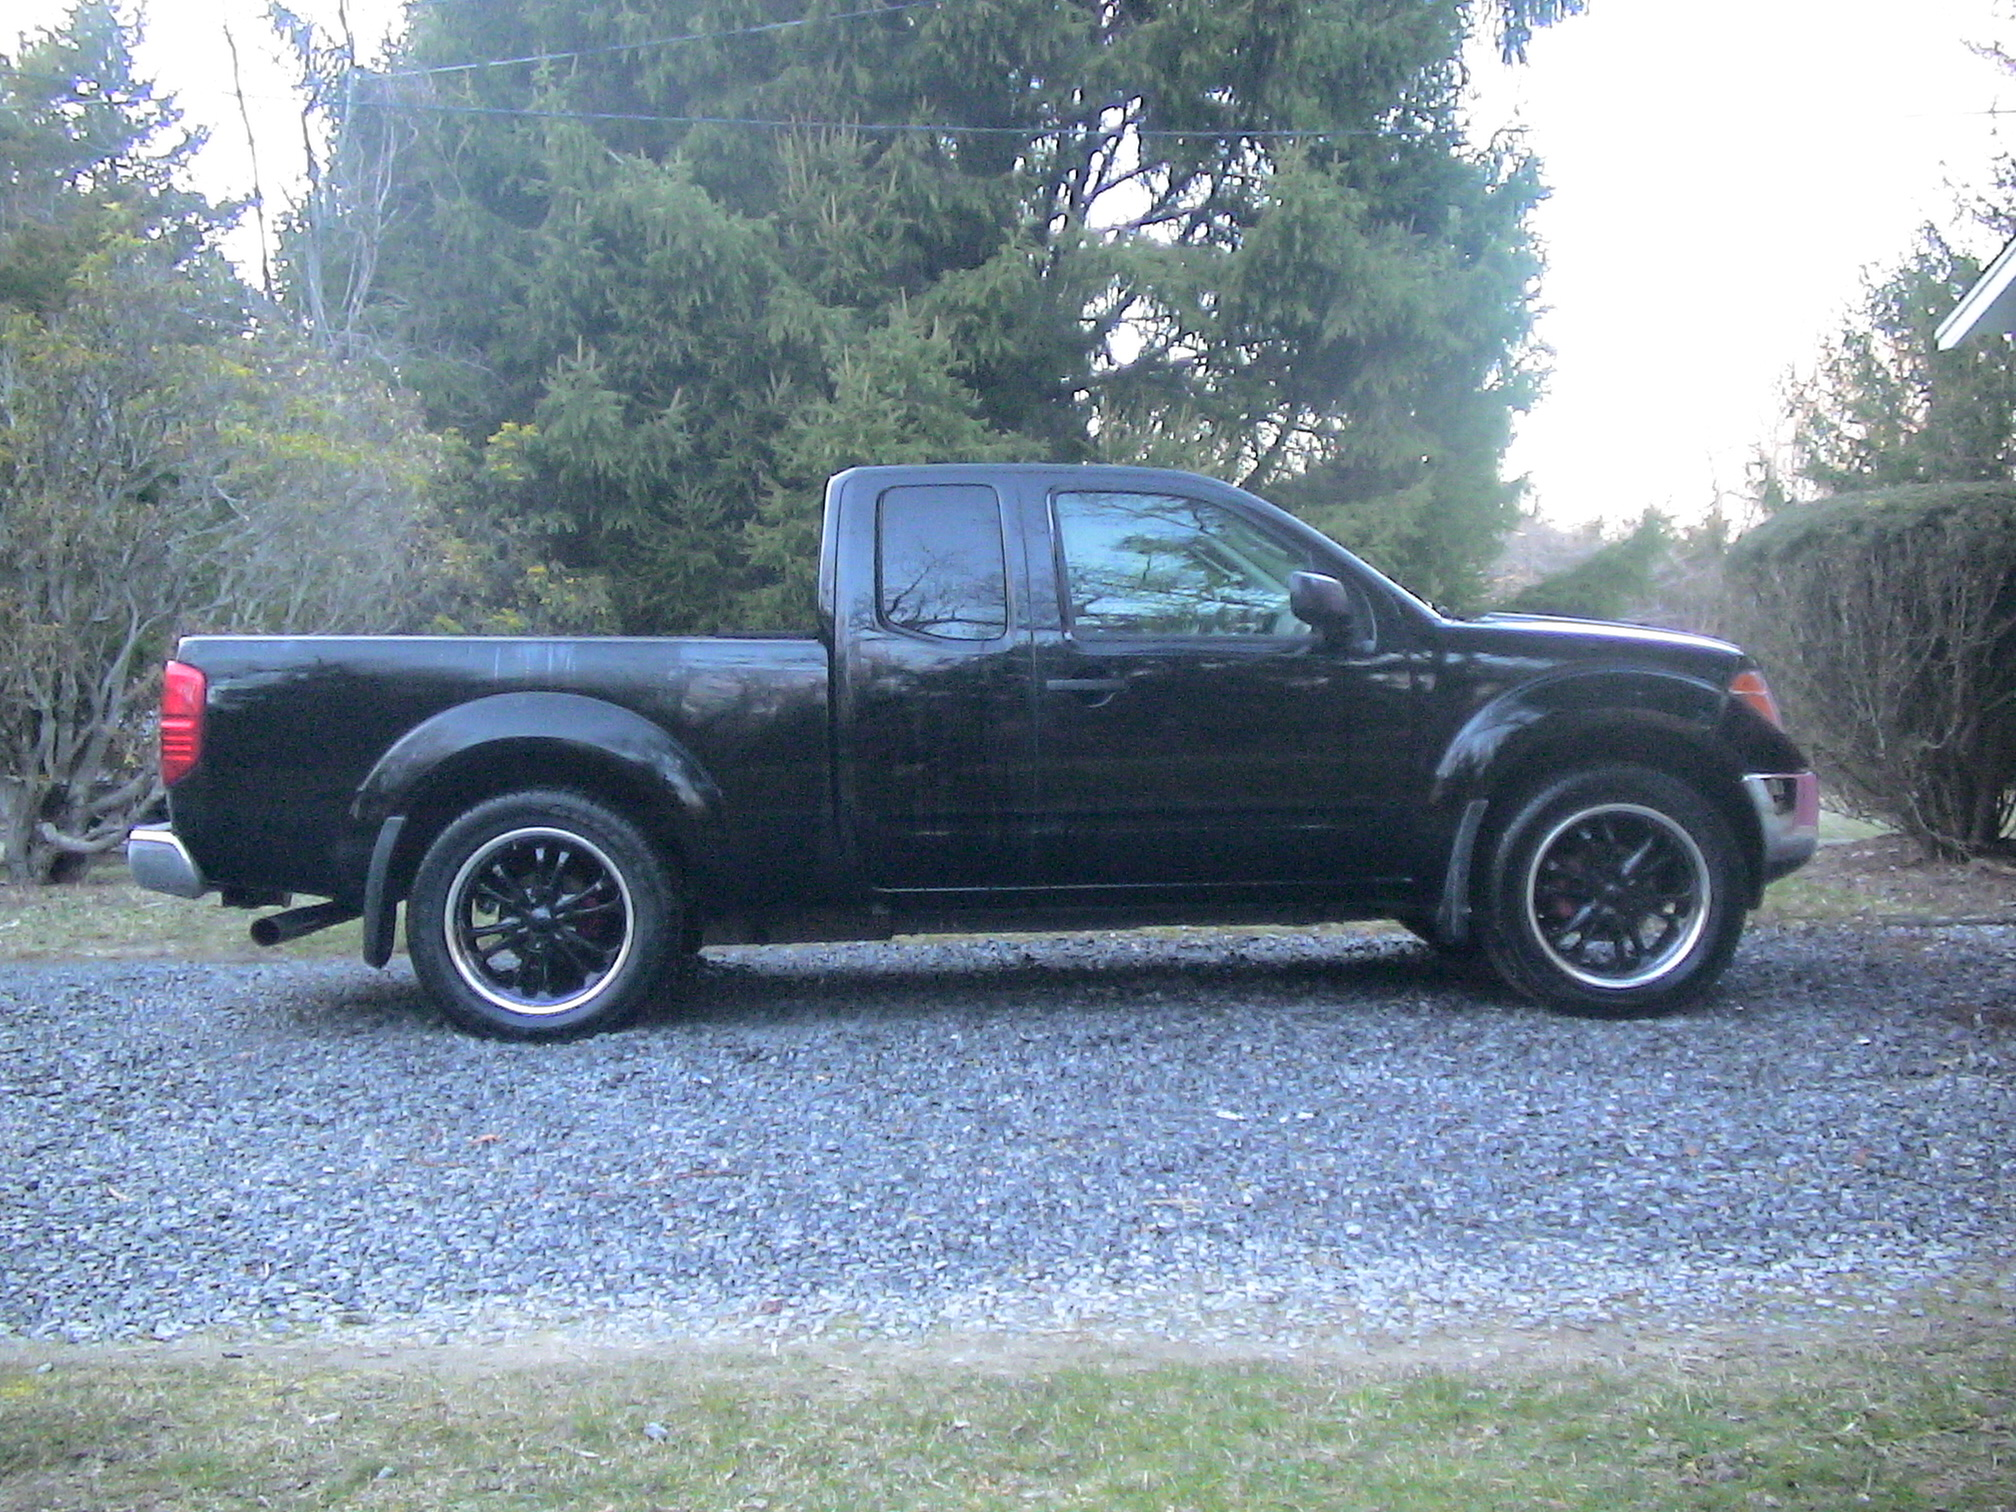 20's and lowering my 06 crew cab - Nissan Frontier Forum